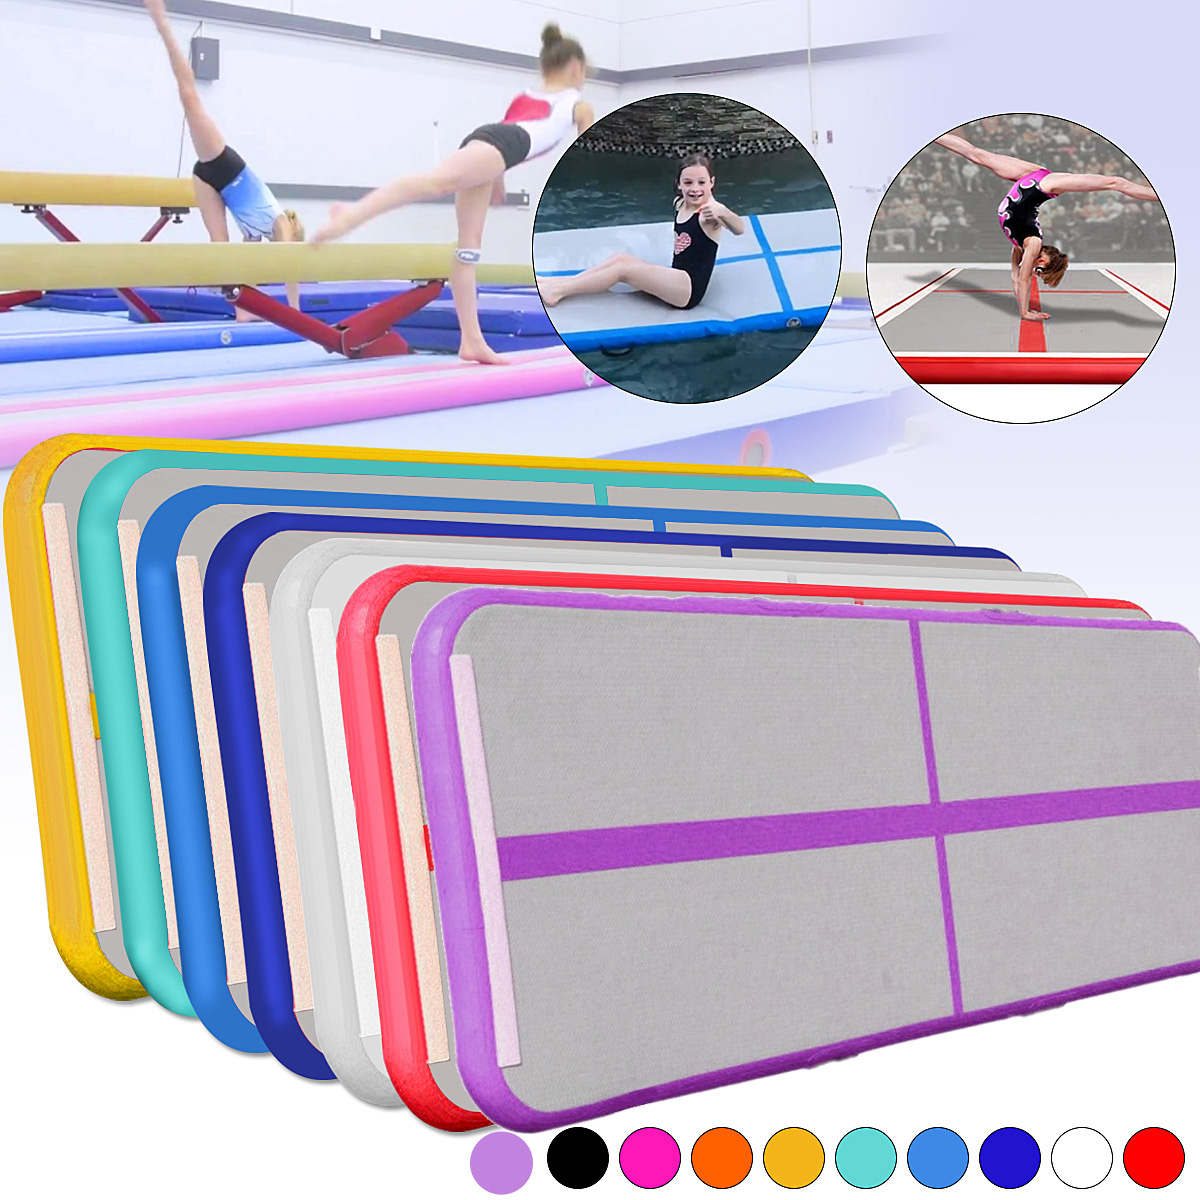 Inflatable Gymnastics AirTrack Tumbling Air Track Floor Trampoline Electric Air Pump for Home Use/Training/Cheerleading/Beach free shipping 6x1x0 2m cheap inflatable gymnastics tumbling mat air floor for home use beach park and water free one pump